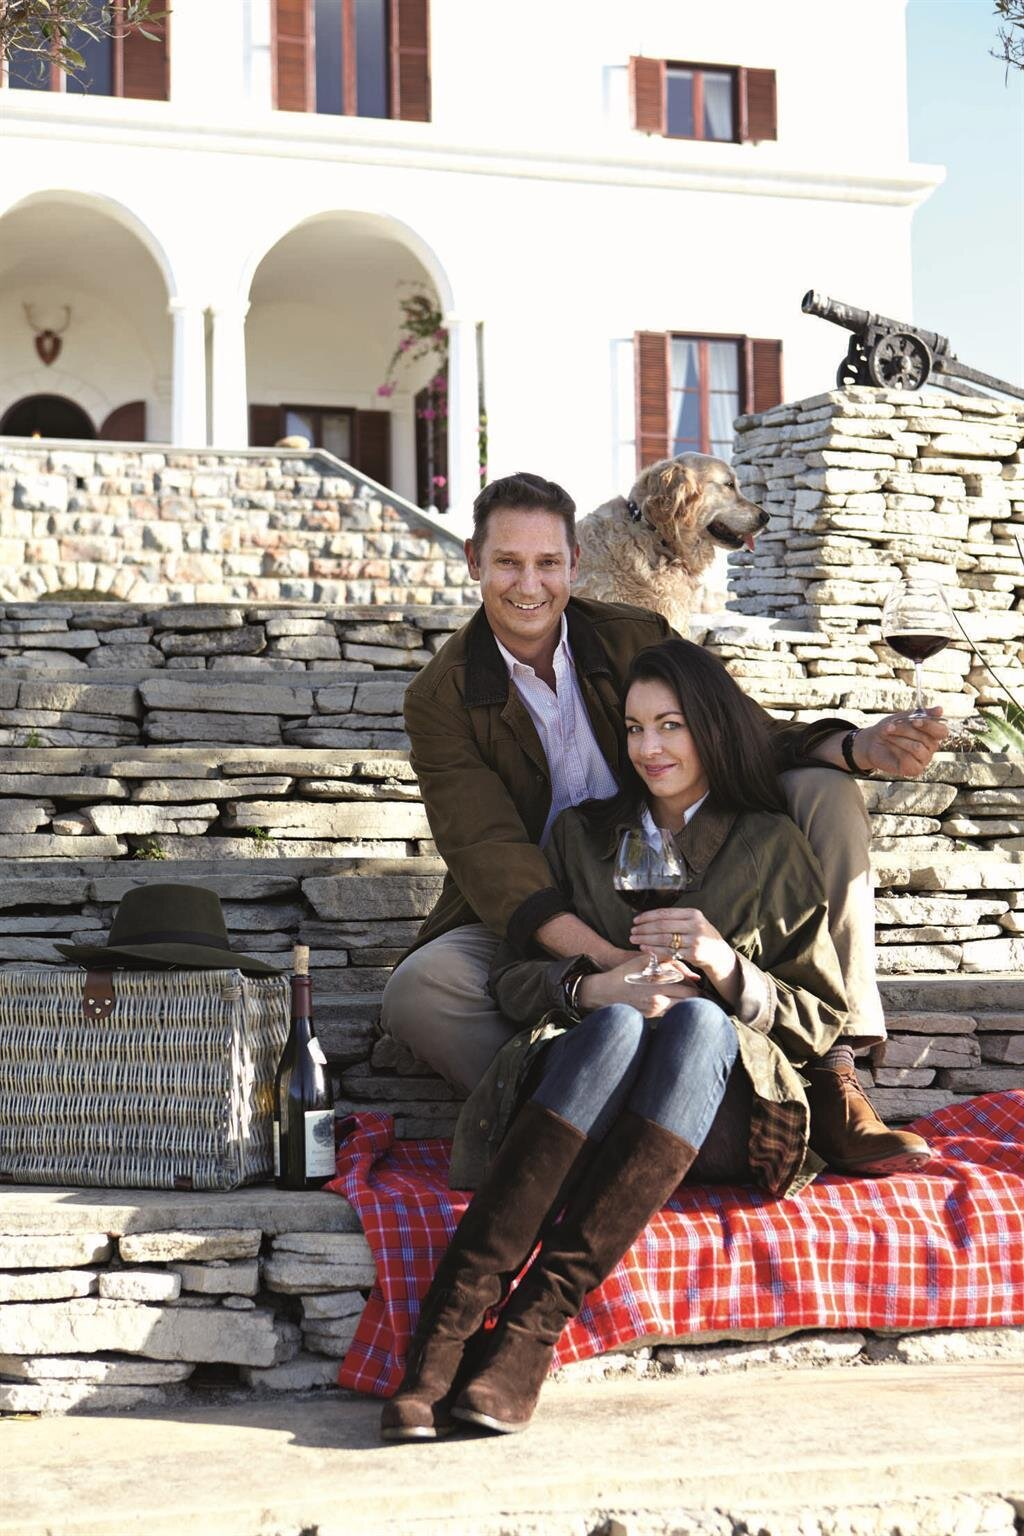 Great photo of Anthony and Olive Hamilton Russell, proprietors of one of South Africa's finest wineries.